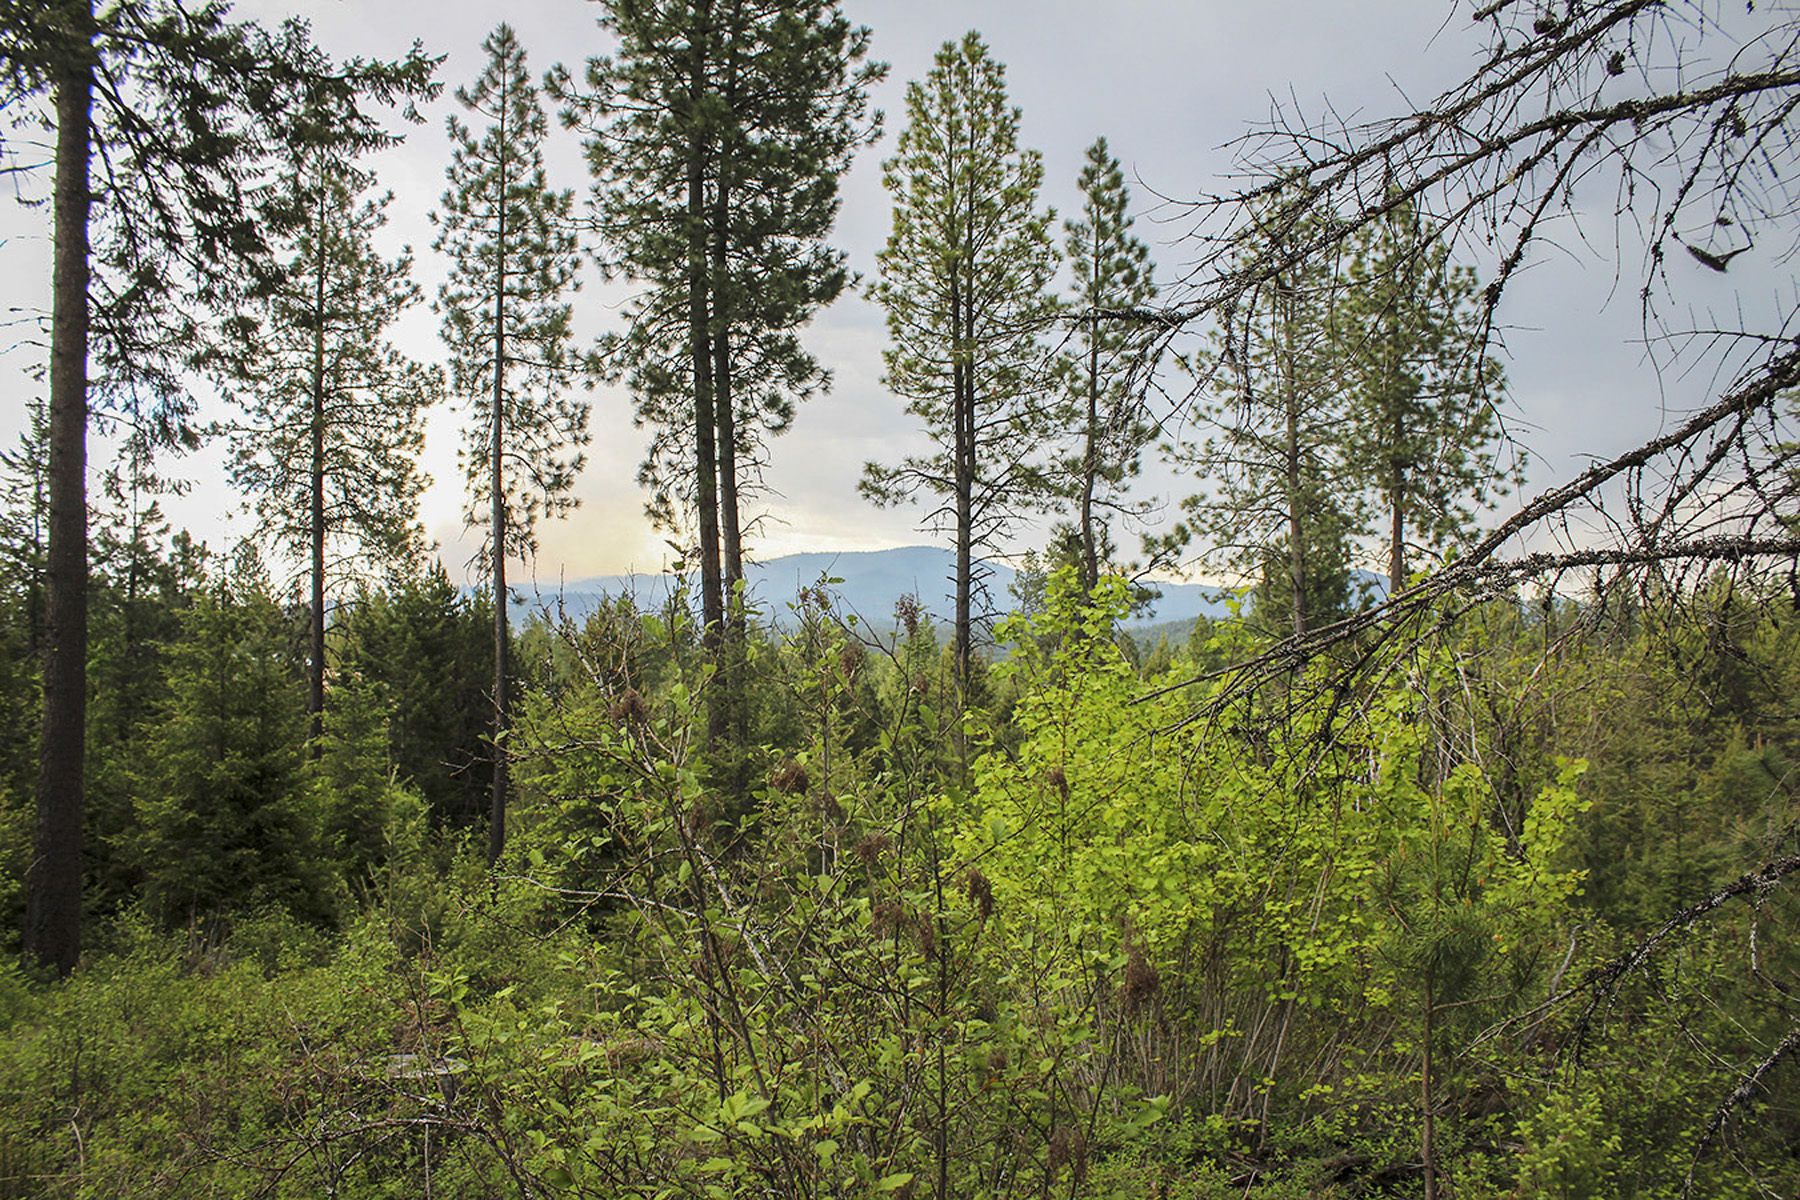 Terrain pour l Vente à Treed home site with end of the road privacy Everett Huff Lot 1 Oldtown, Idaho, 83822 États-Unis